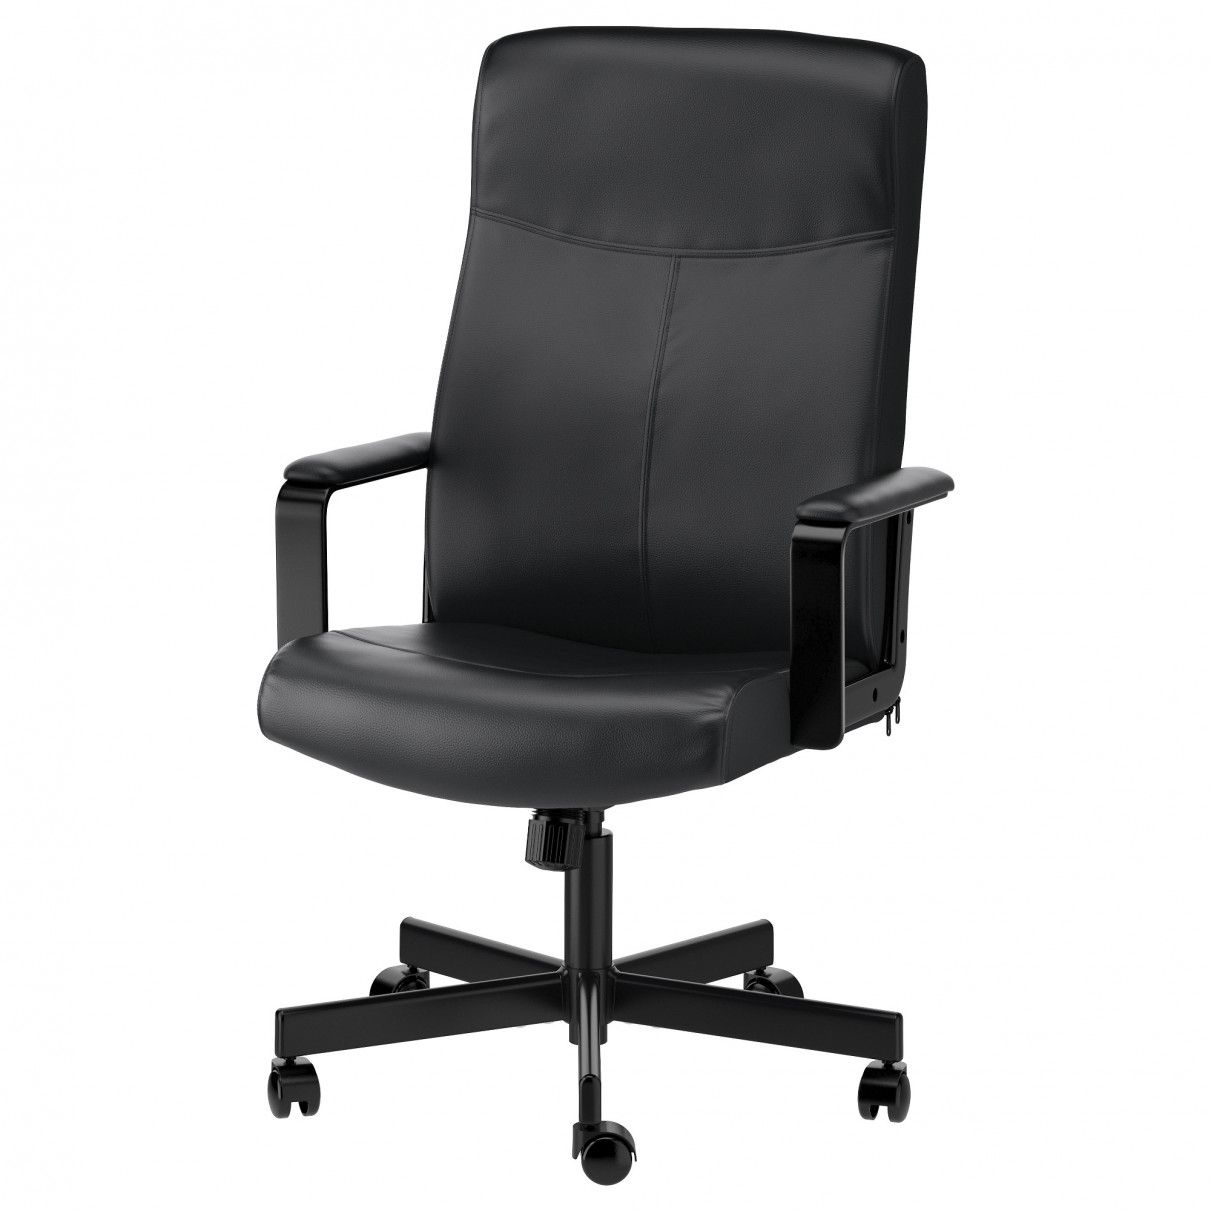 used ikea office furniture. Ikea Black Office Chair - Used Home Furniture Check More At Http://